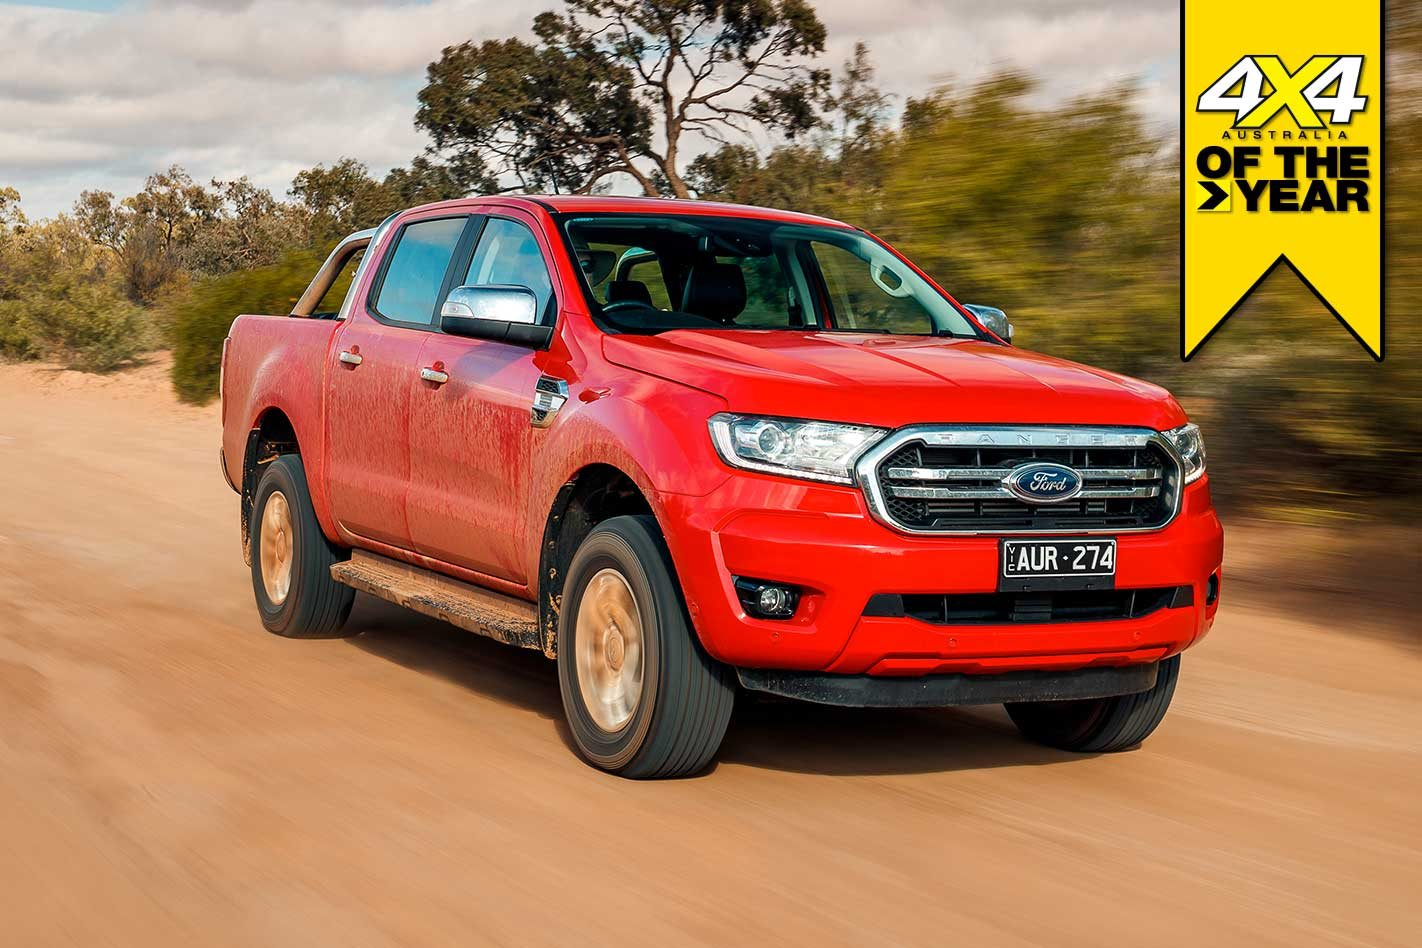 Ford Ranger Xlt Review 4x4 Of The Year 2019